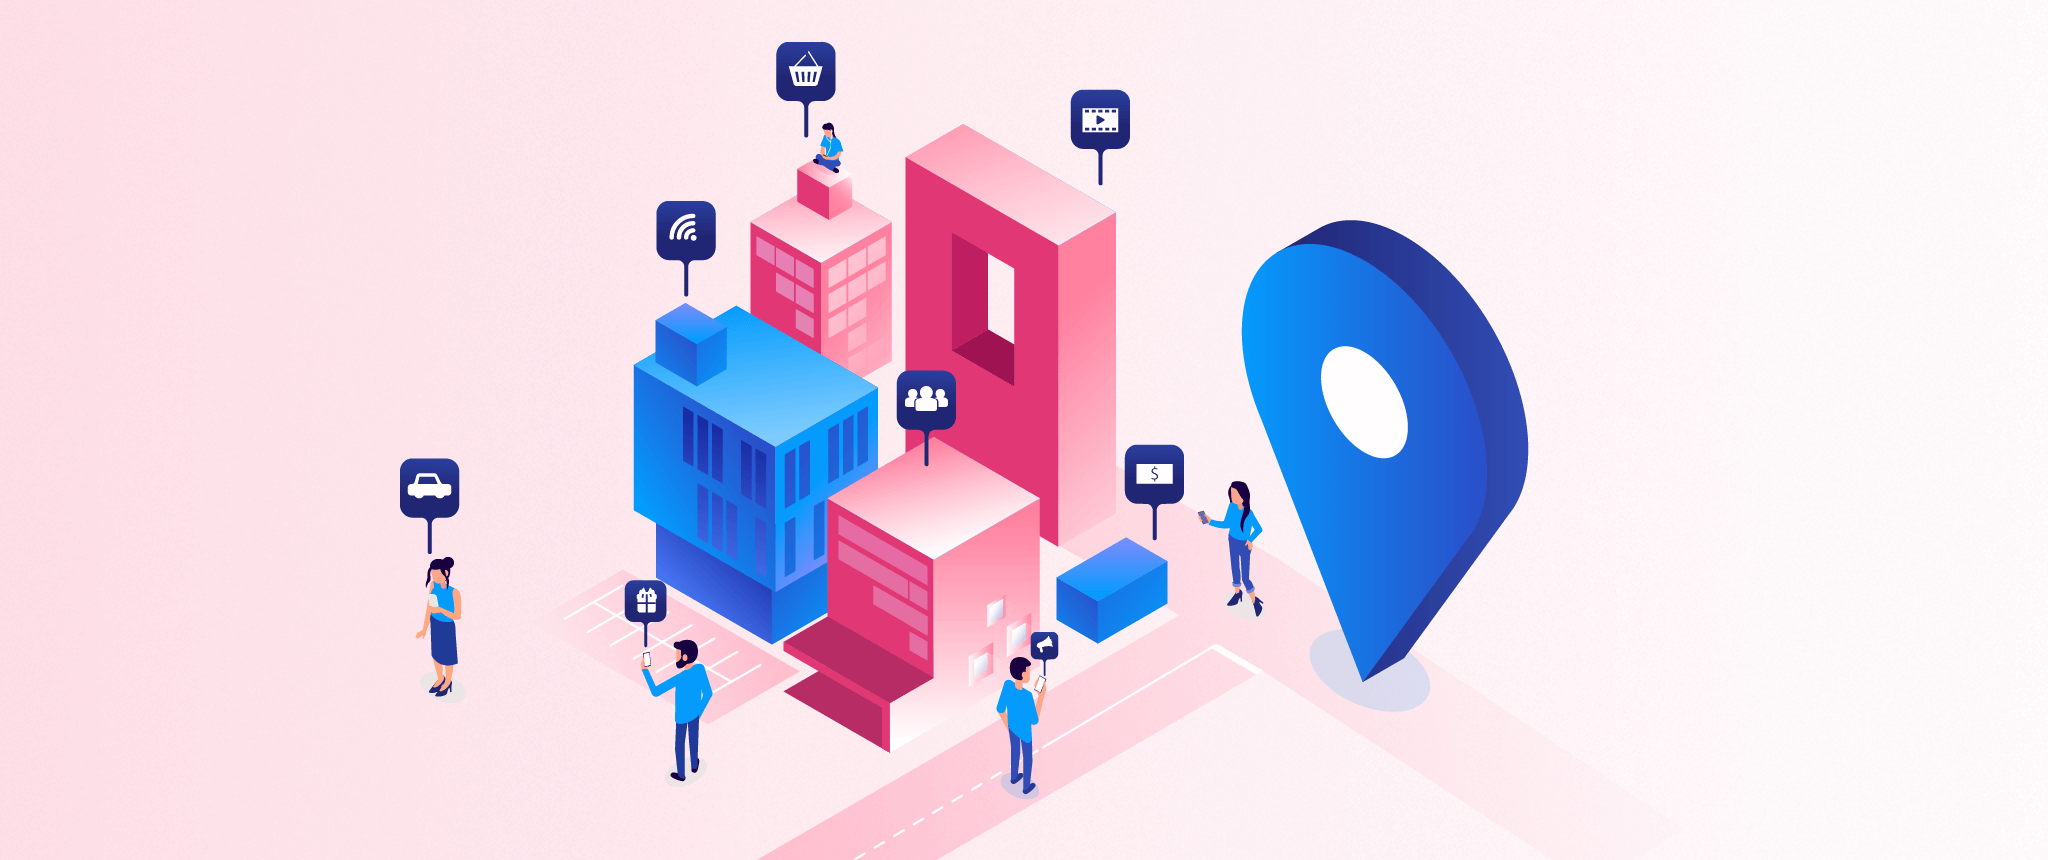 Location-Based Marketing Playbook: 7 Use Cases for Engaging Users On the Move